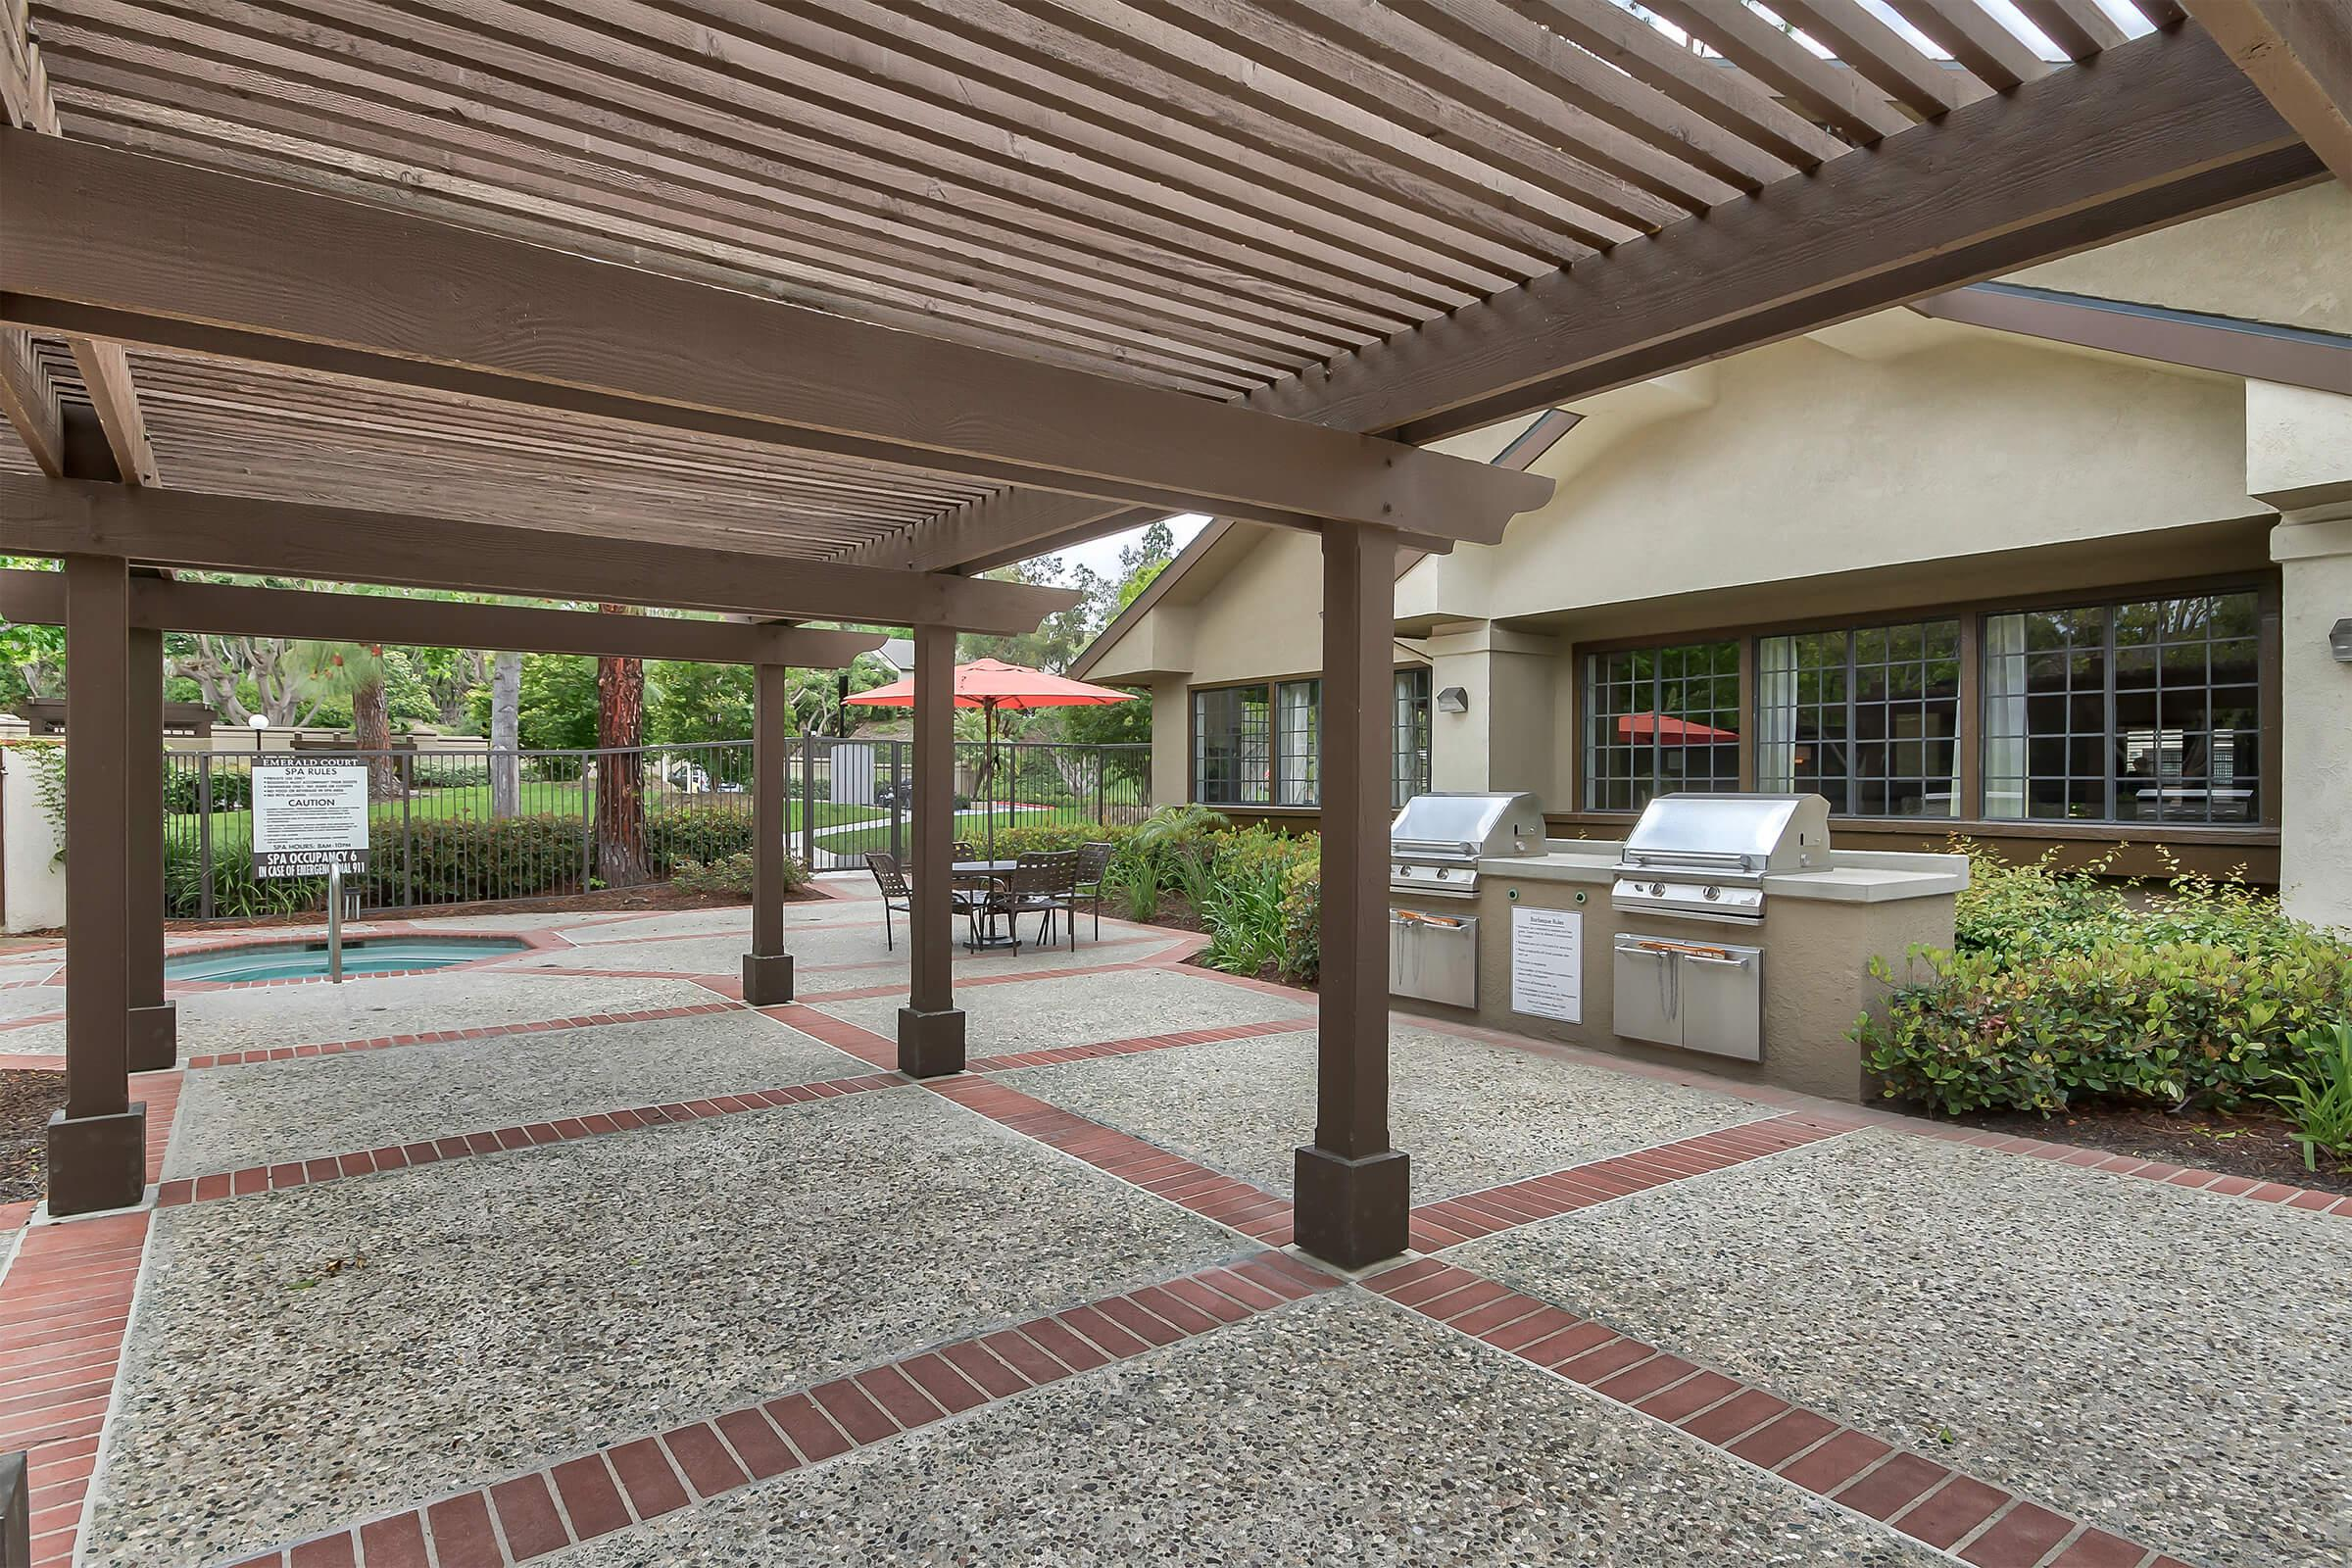 Stainless steel barbecues and the community spa